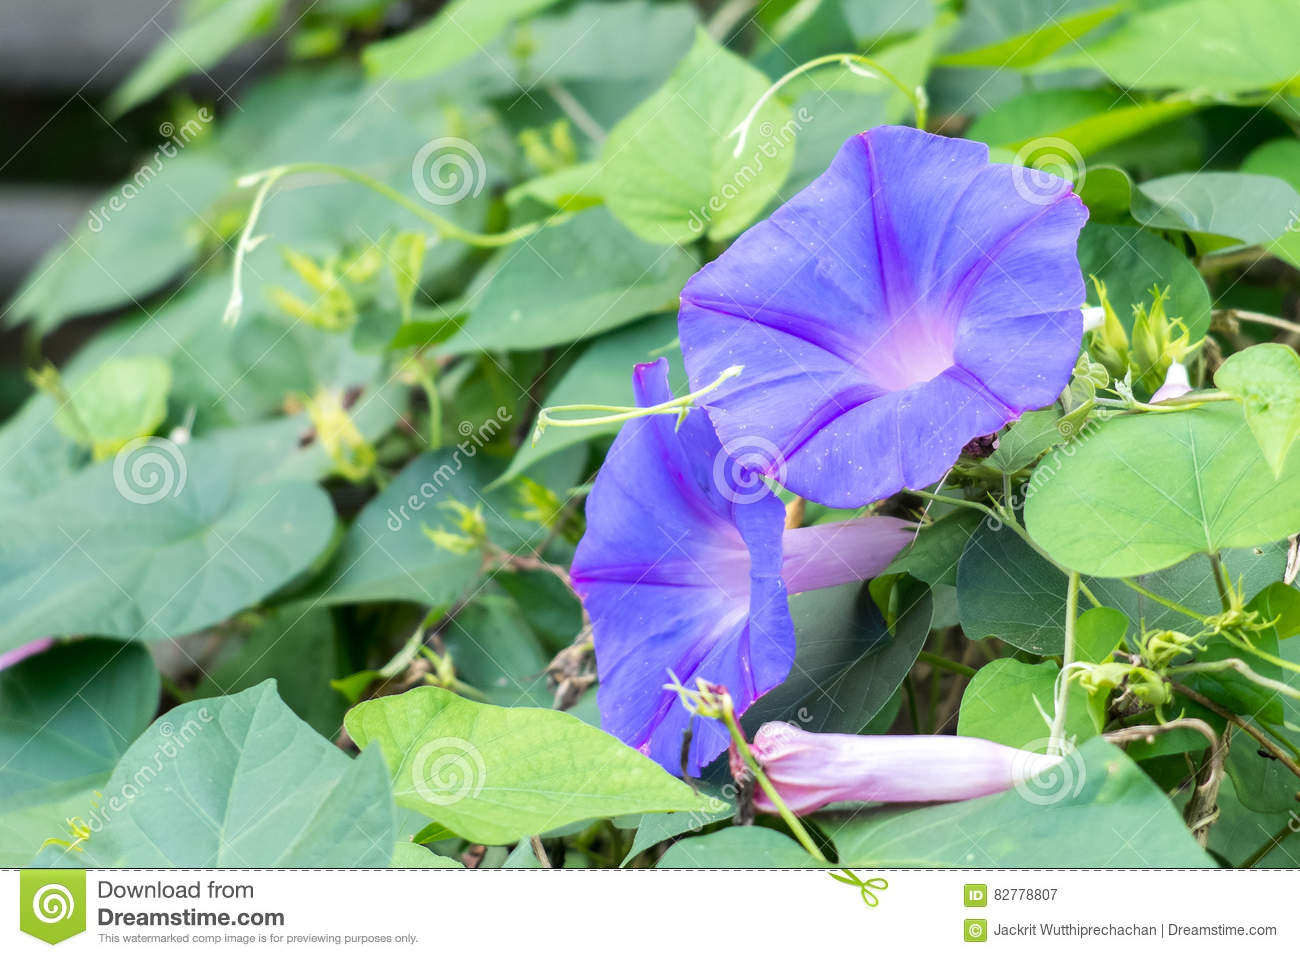 Closeup Couple of Shading Purple Butterfly Pea Flowers Blooming on The Tree with Green Leaves Background at The Corner